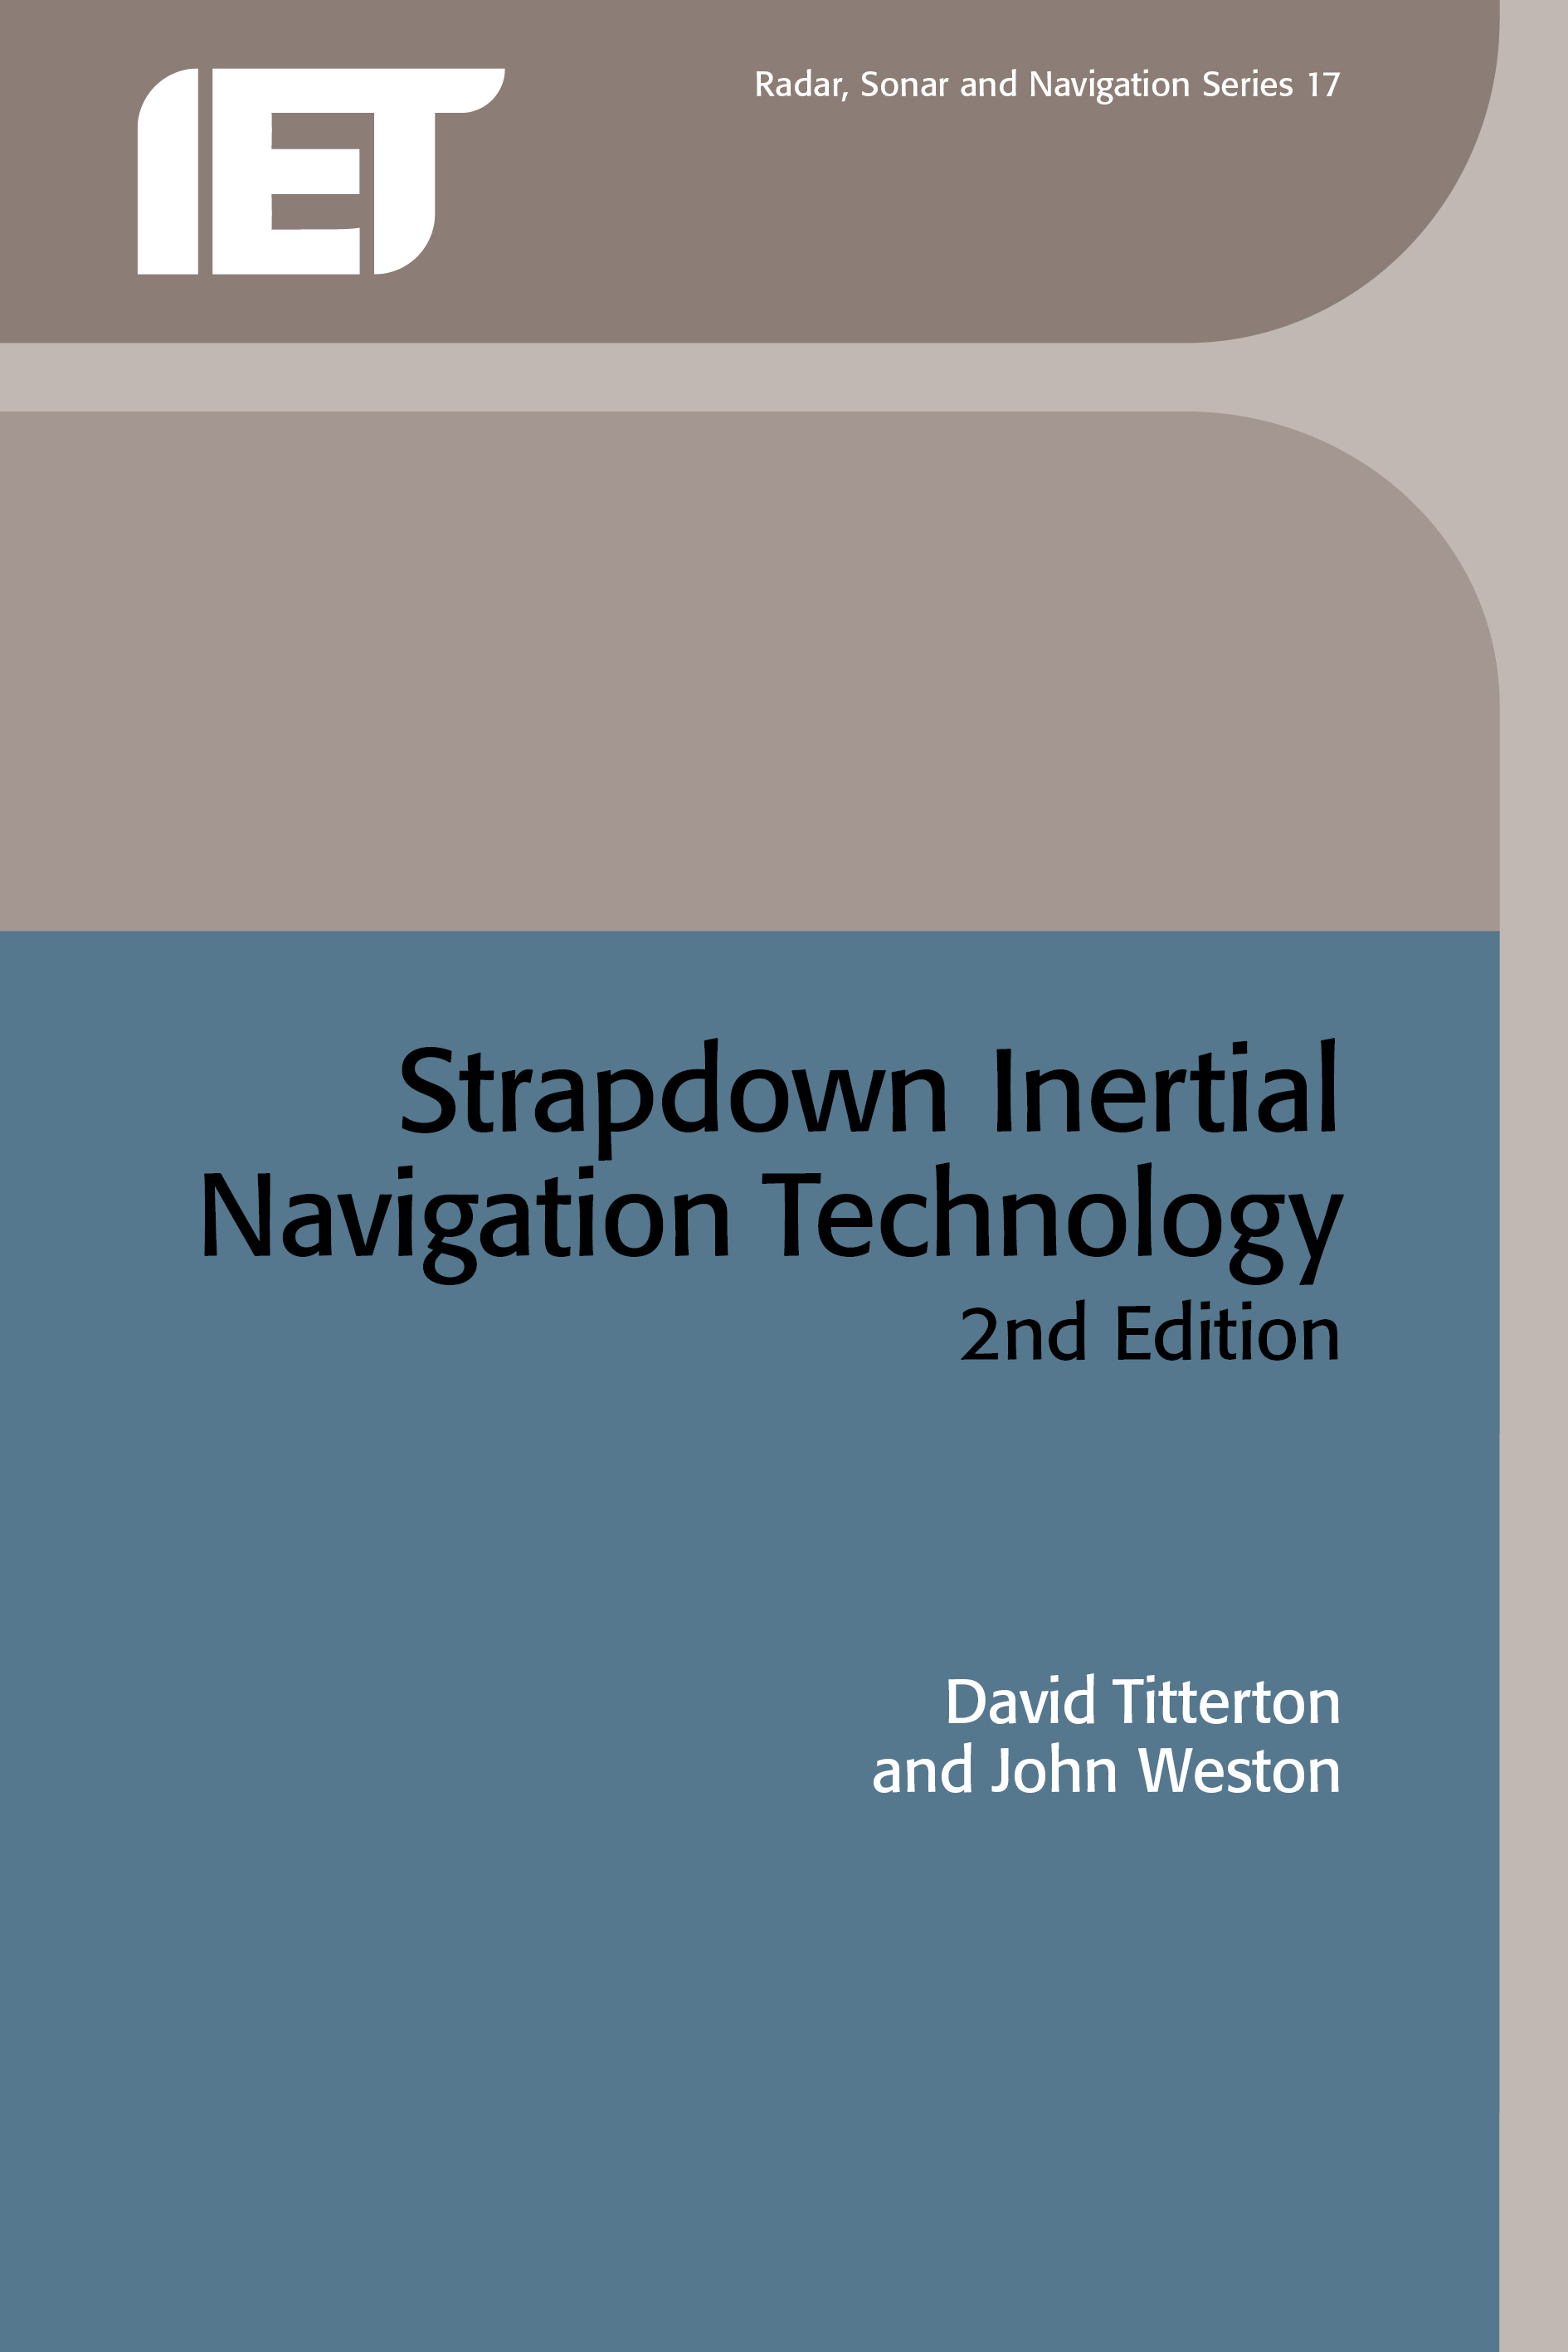 Strapdown Inertial Navigation Technology, 2nd Edition